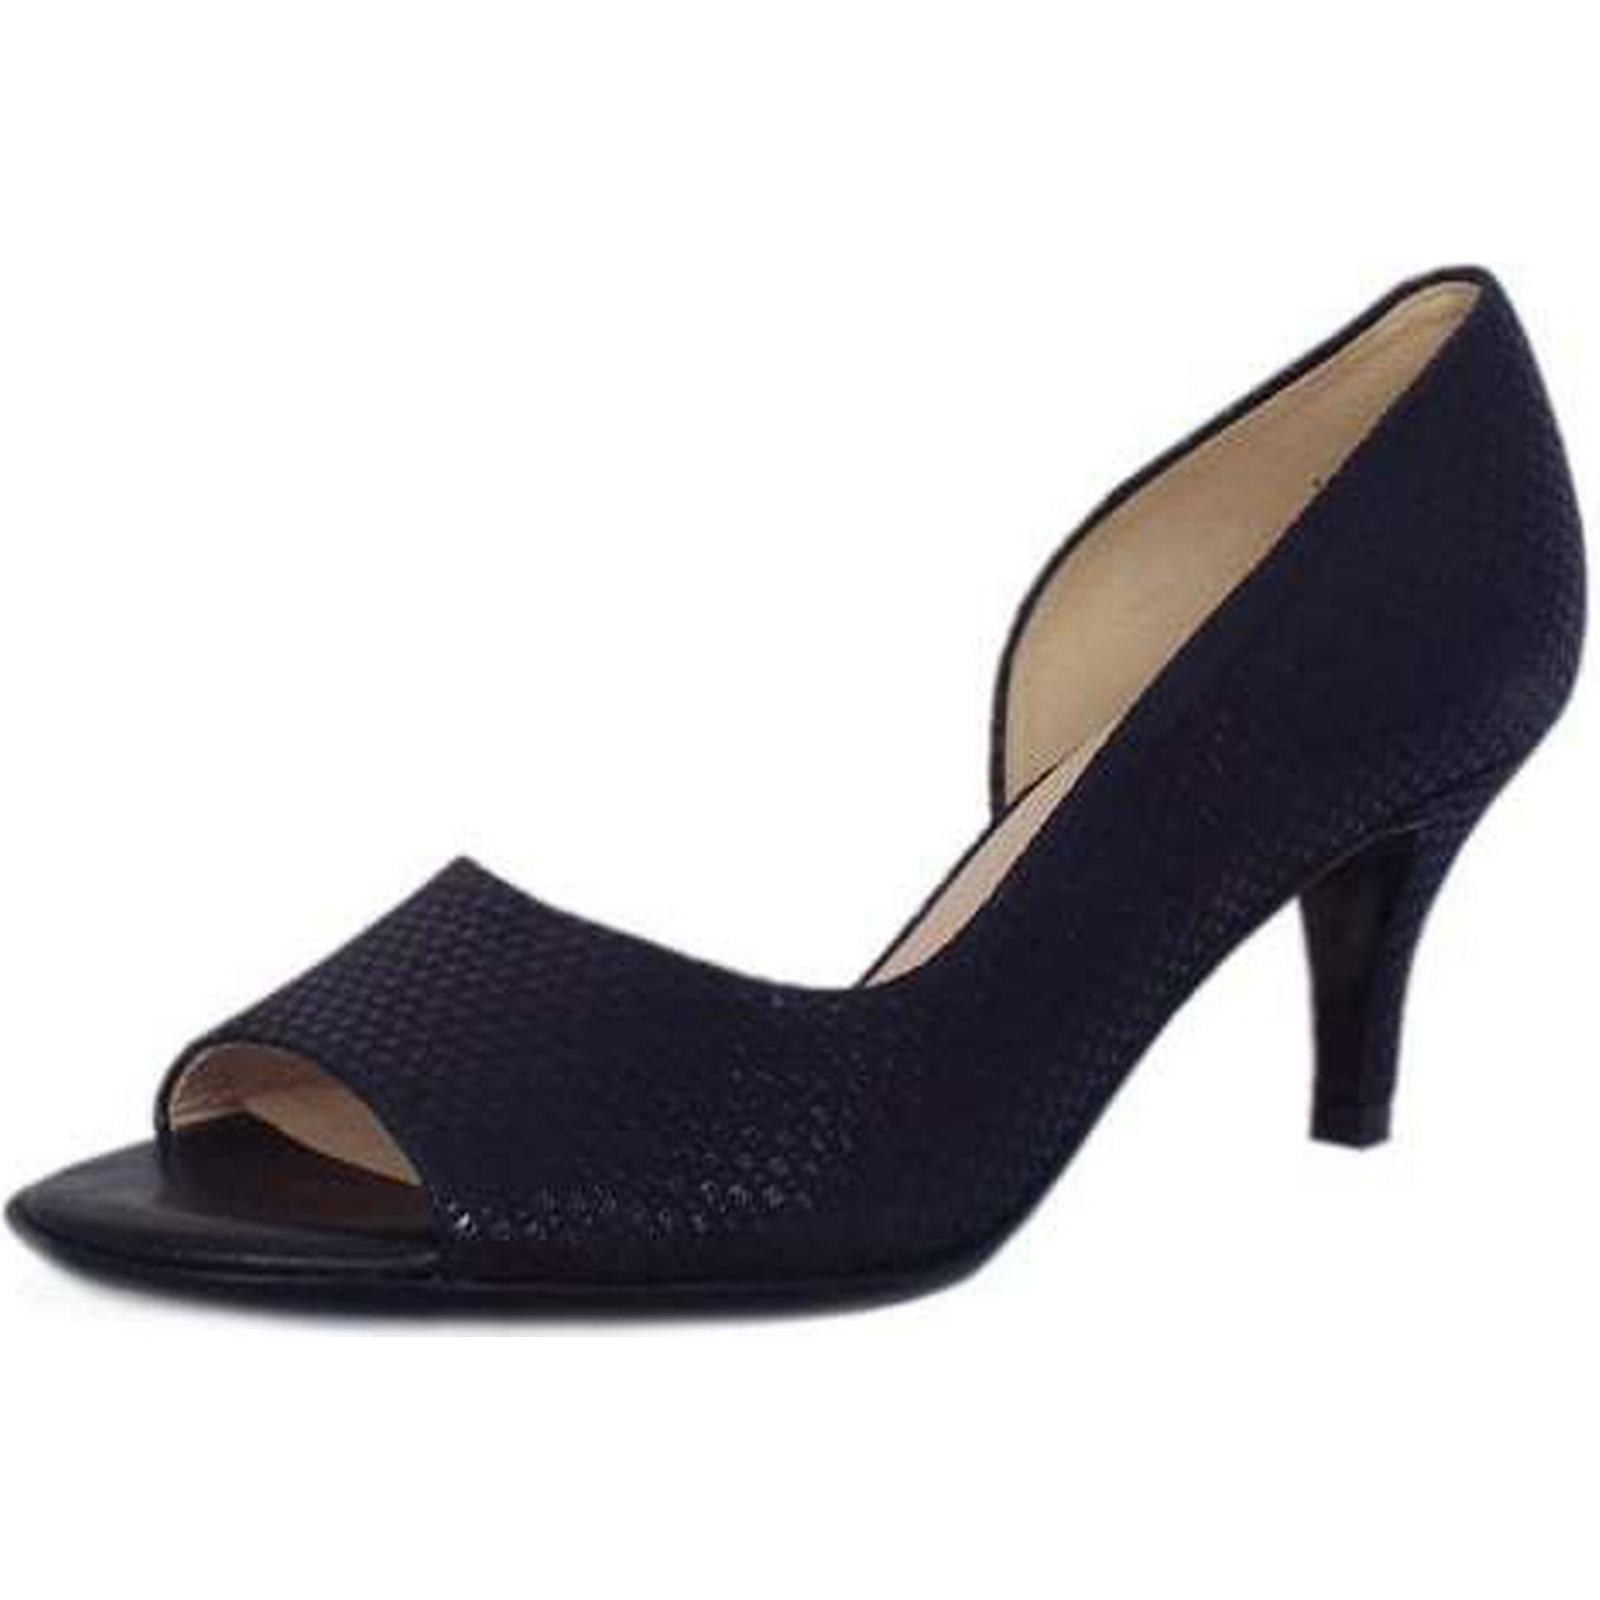 Peter Kaiser JAMALA PETER KAISER LADIES OPEN SHOES Size: Size: SHOES 7 db32b0